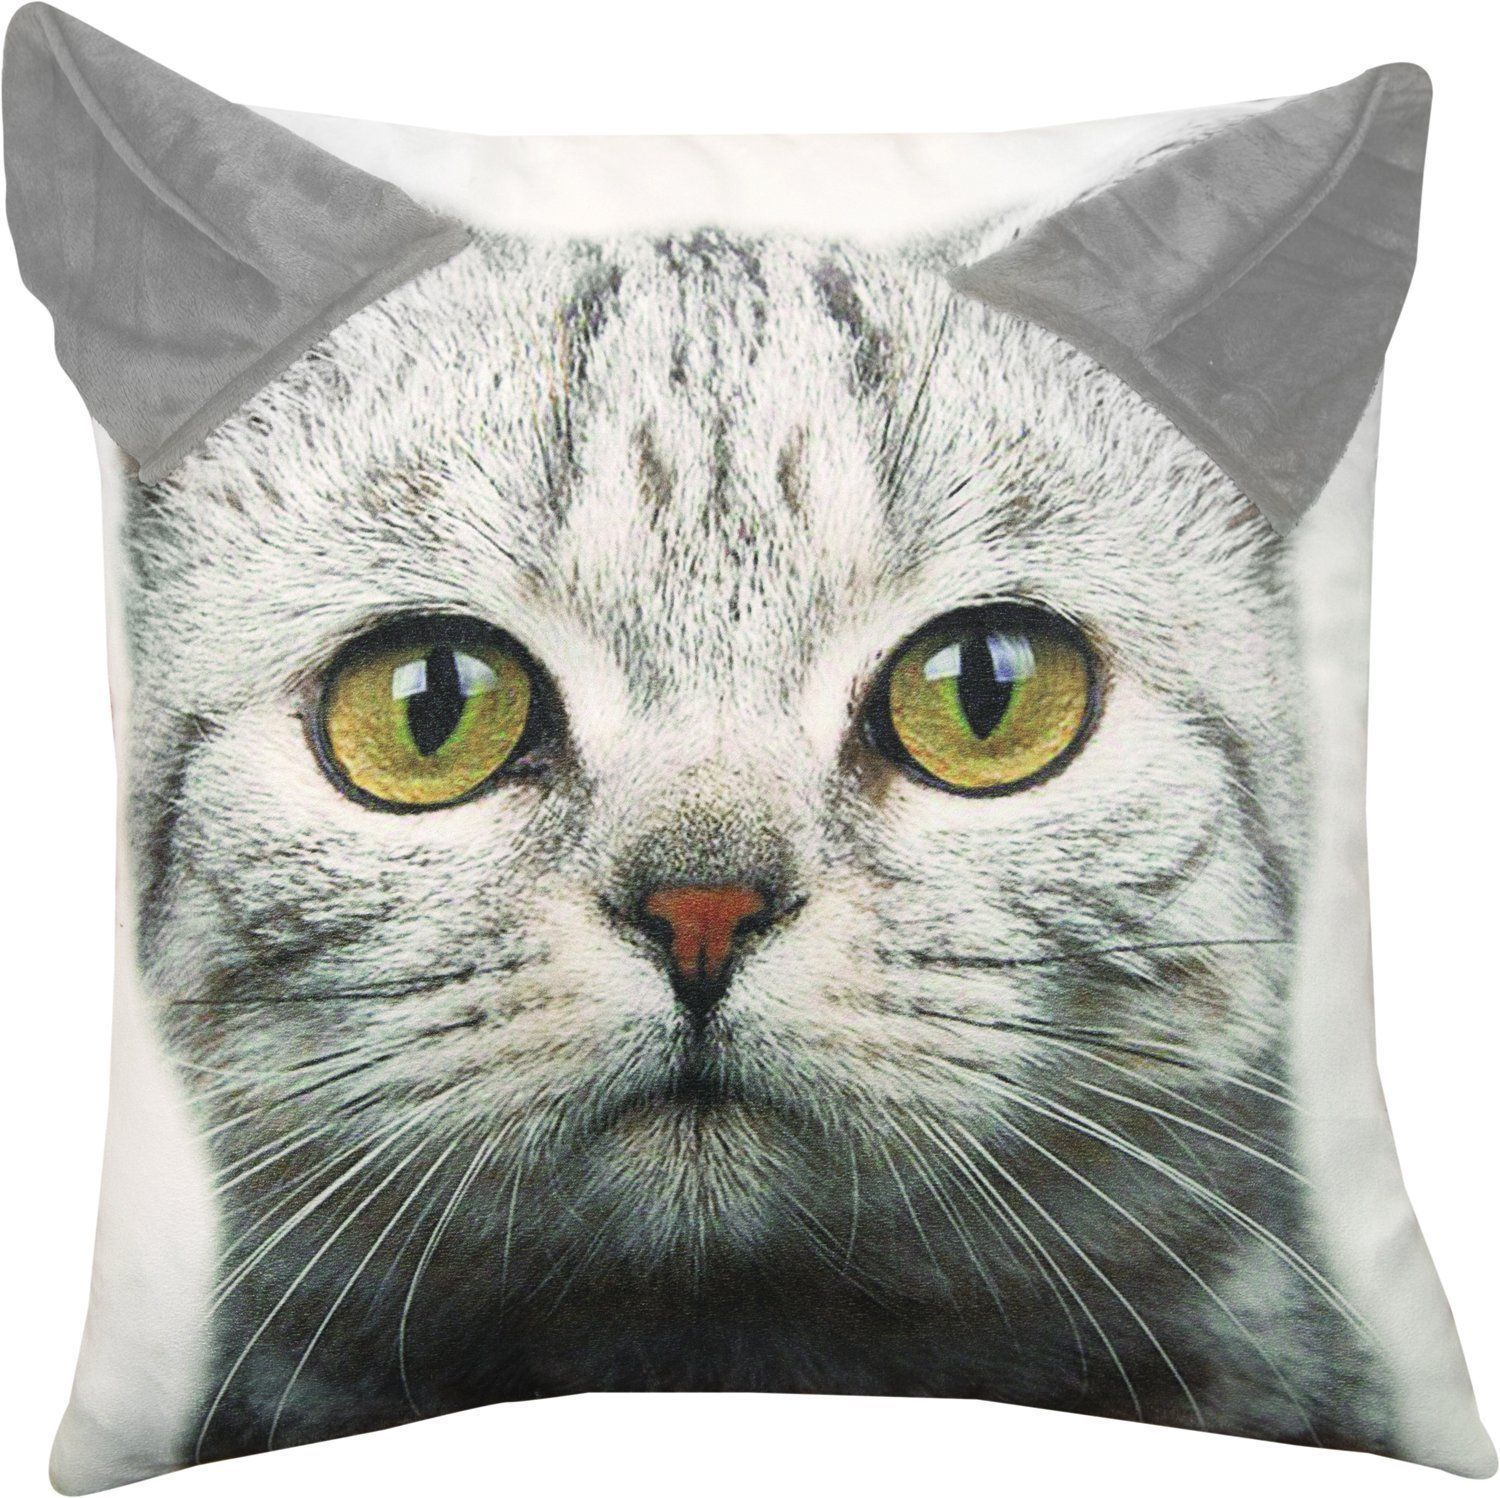 Primary image for Grey Tabby Kitty Cat Printed Throw Pillow with 3D Ears 18 X 18